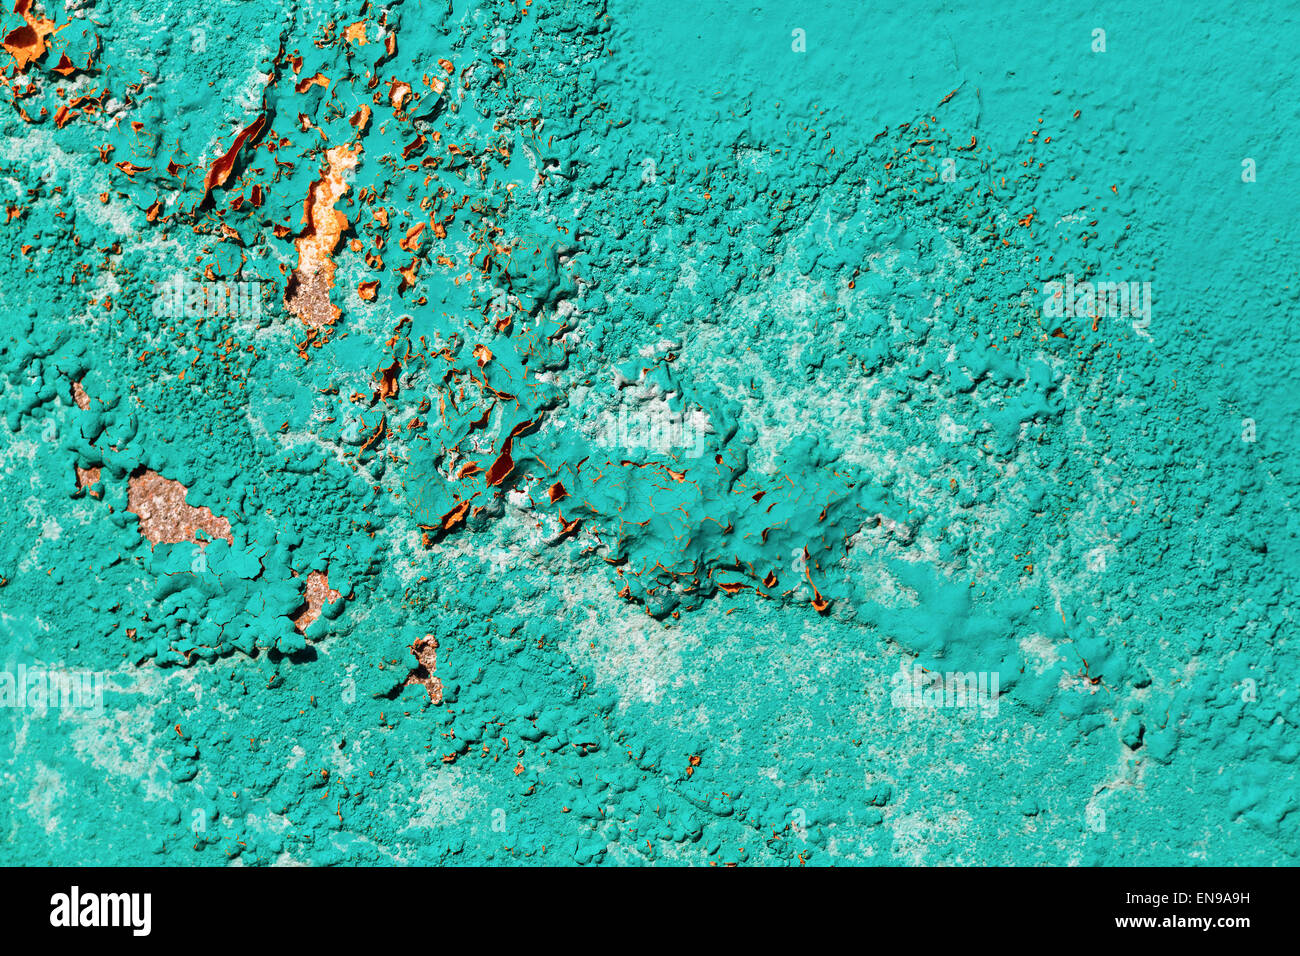 light turquoise paint soft peeling paint texture turquoise background fragment of the old wall painted bright turquoise paint cracked over time